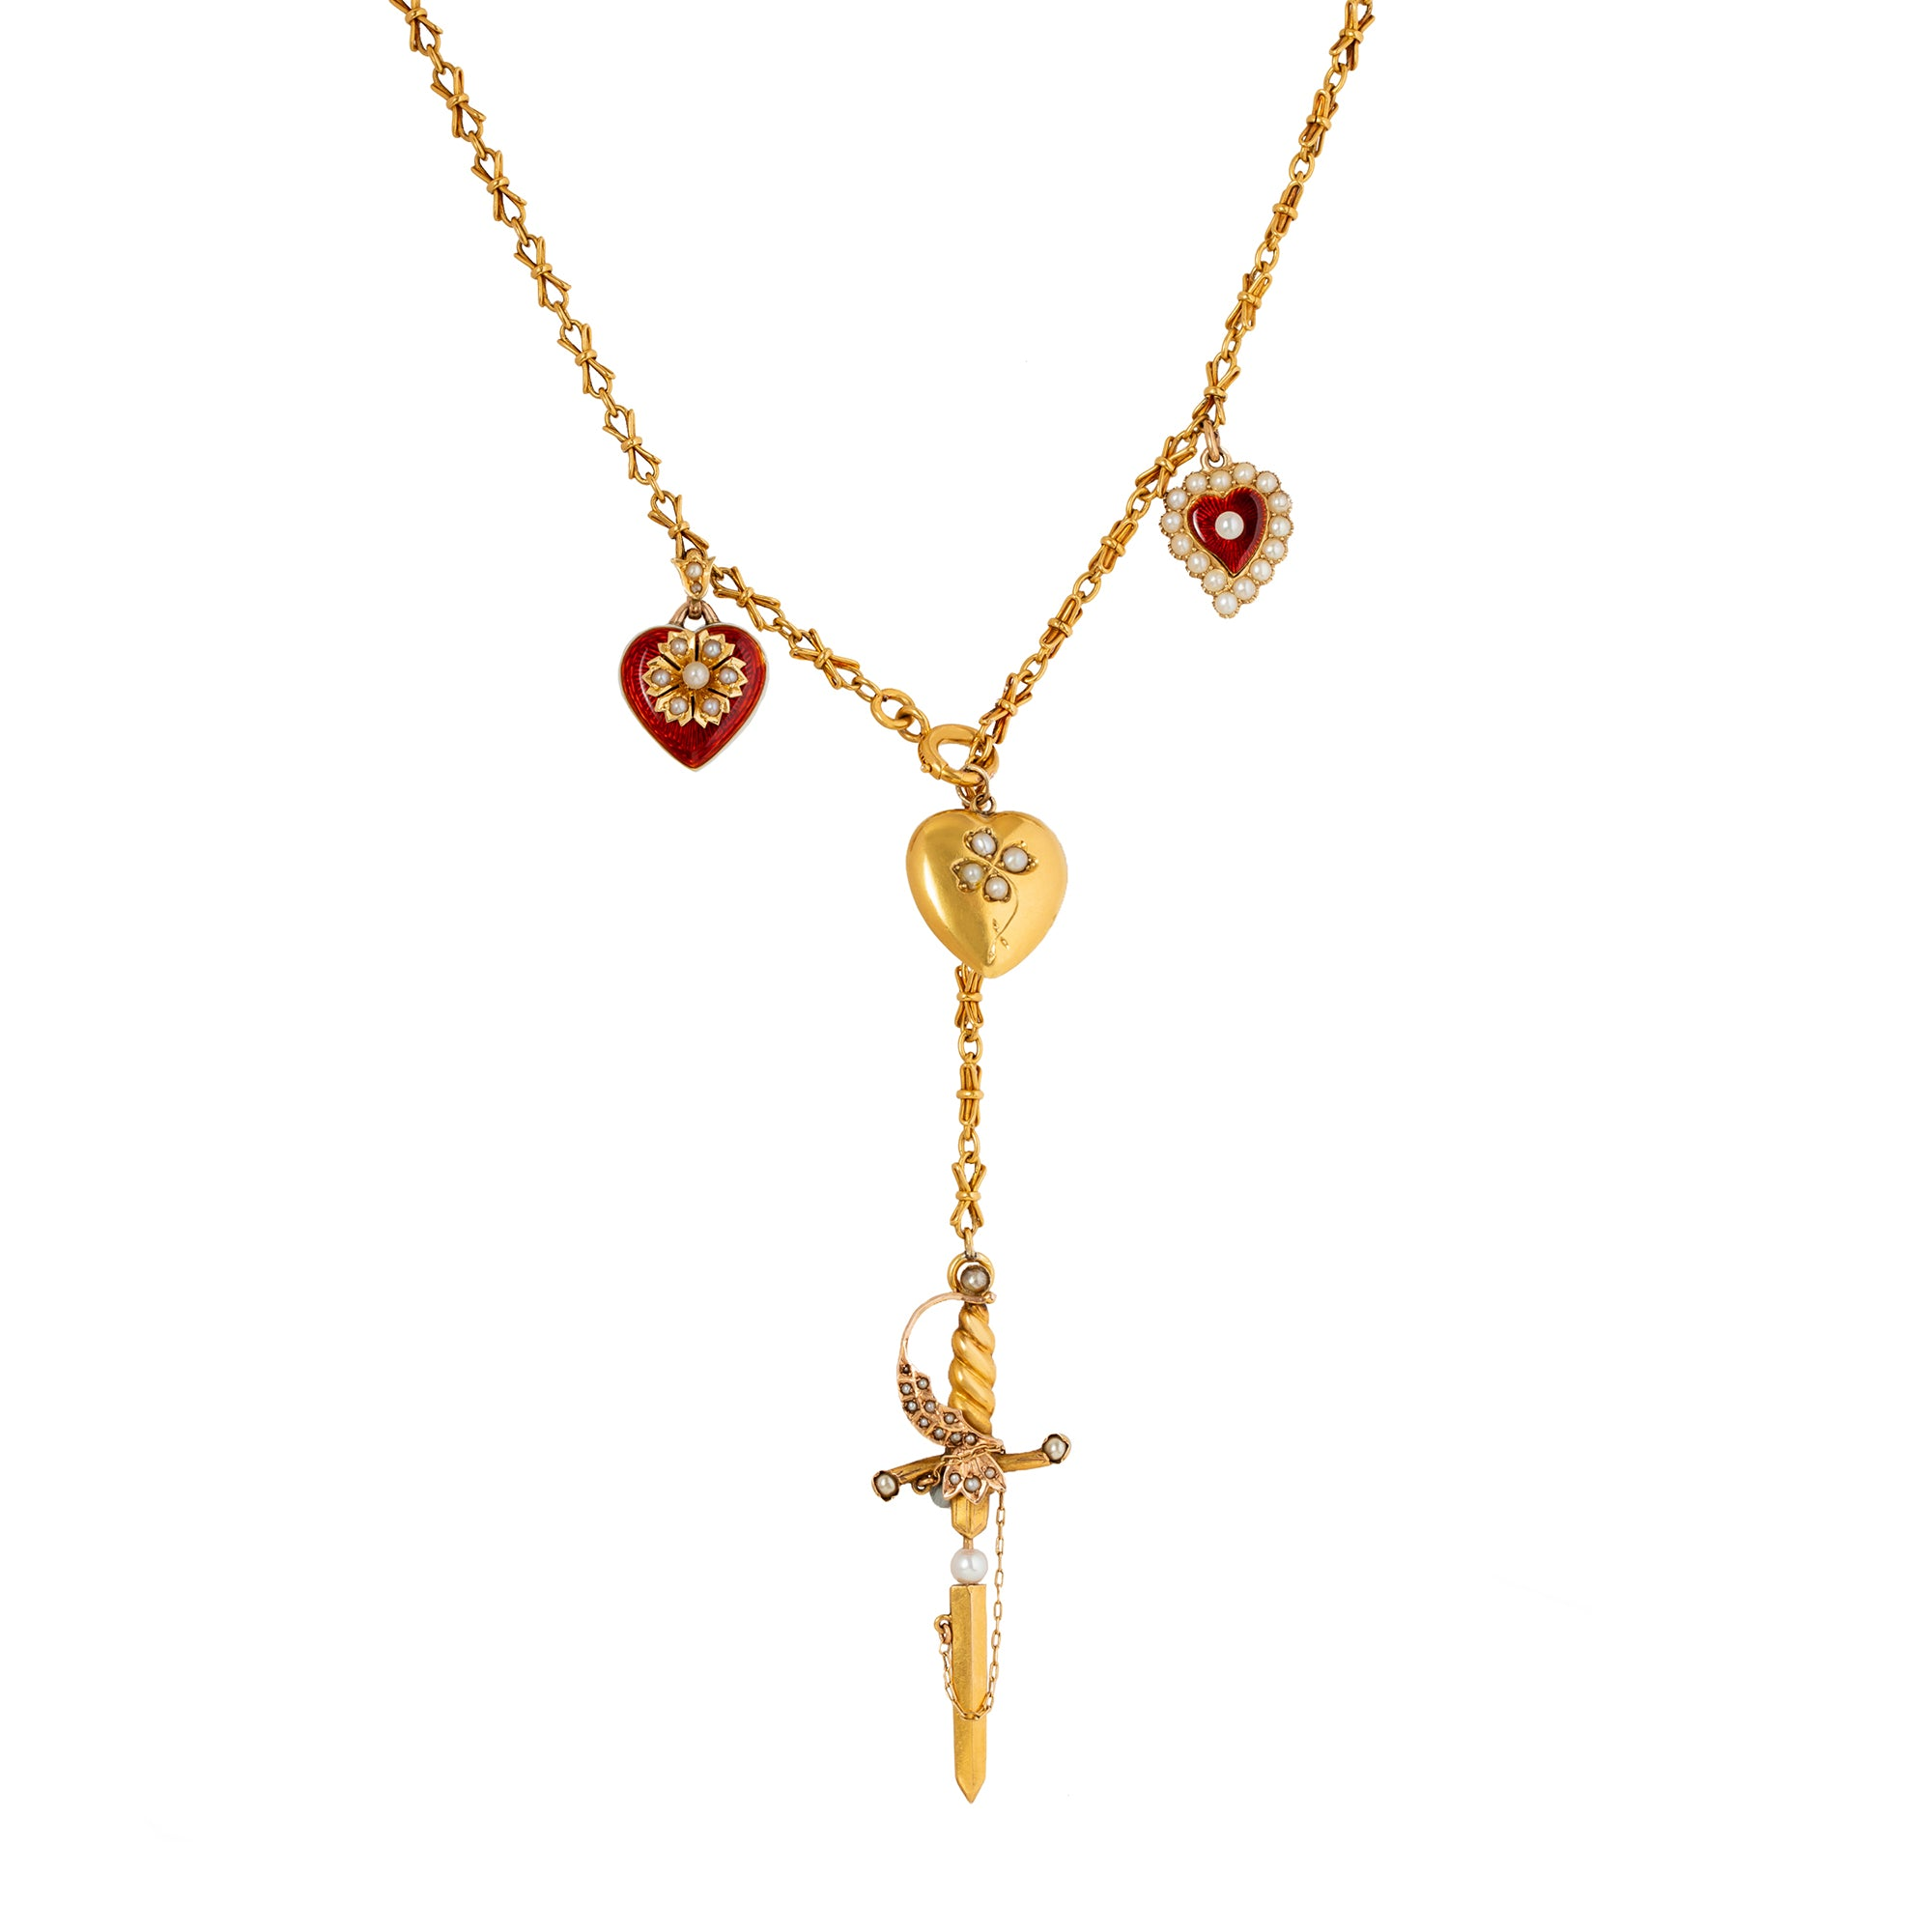 Colette Dagger & Hearts Necklace - Necklaces - Broken English Jewelry